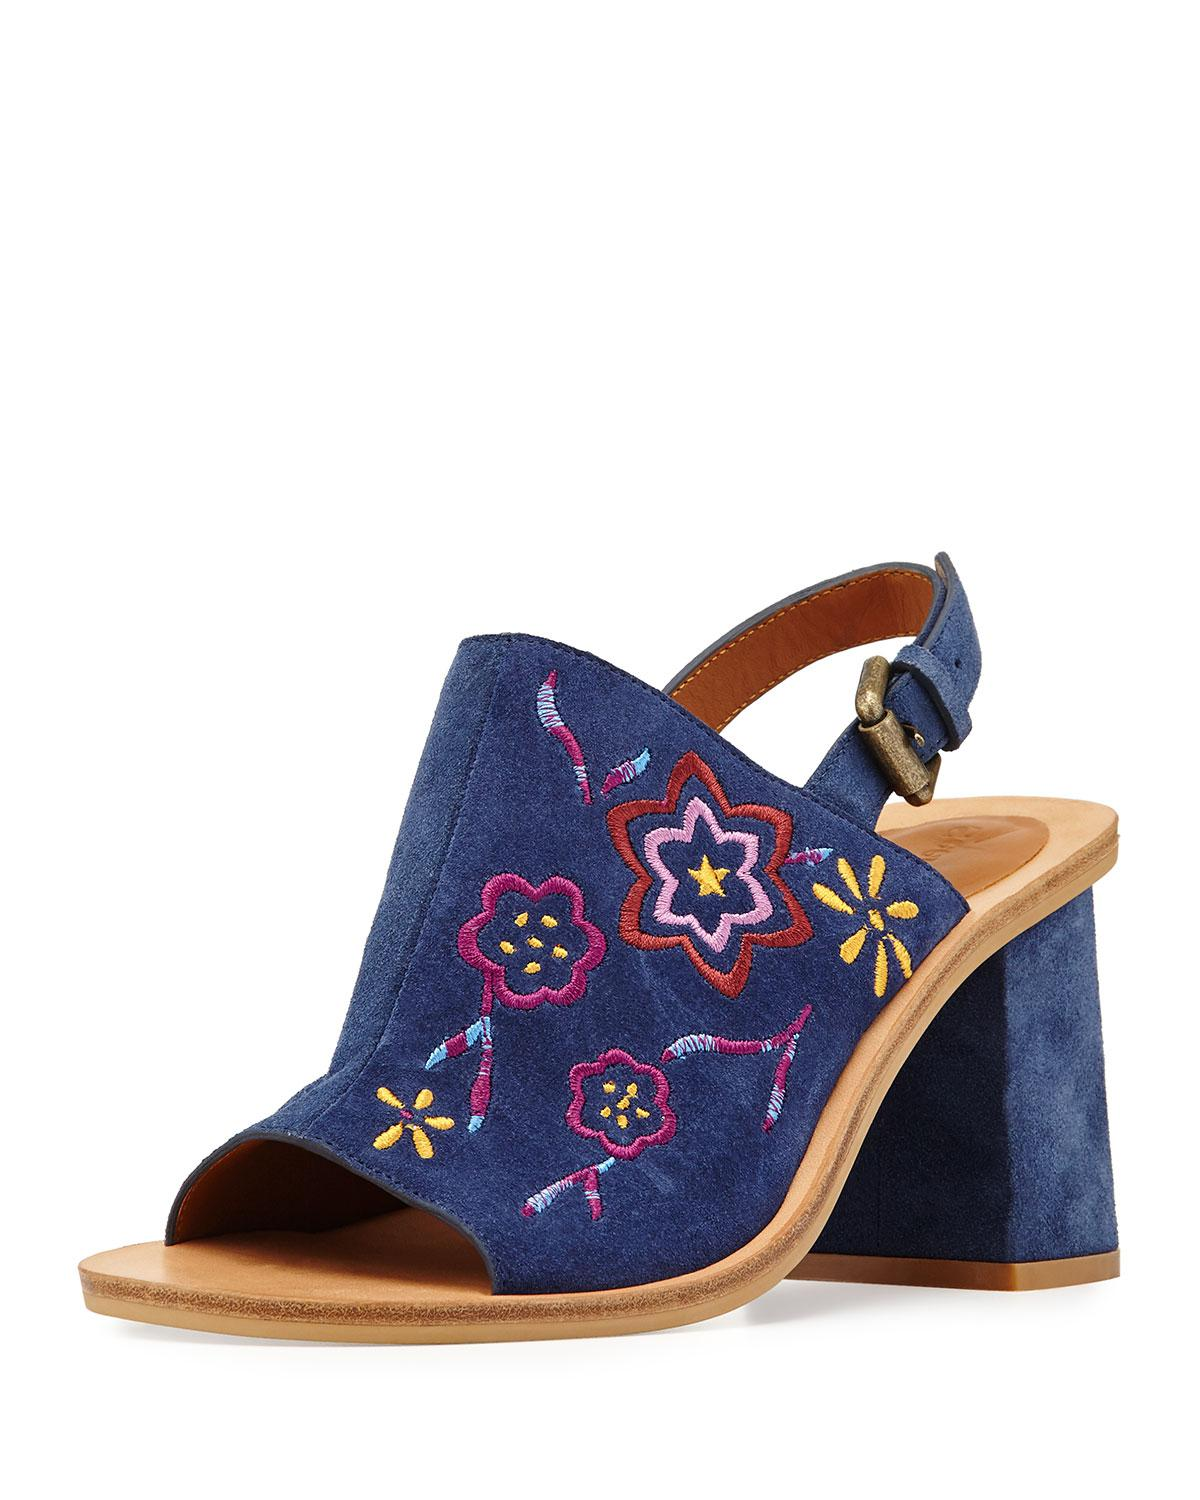 embroidered sandals - Blue See By Chlo�� voSX5BH